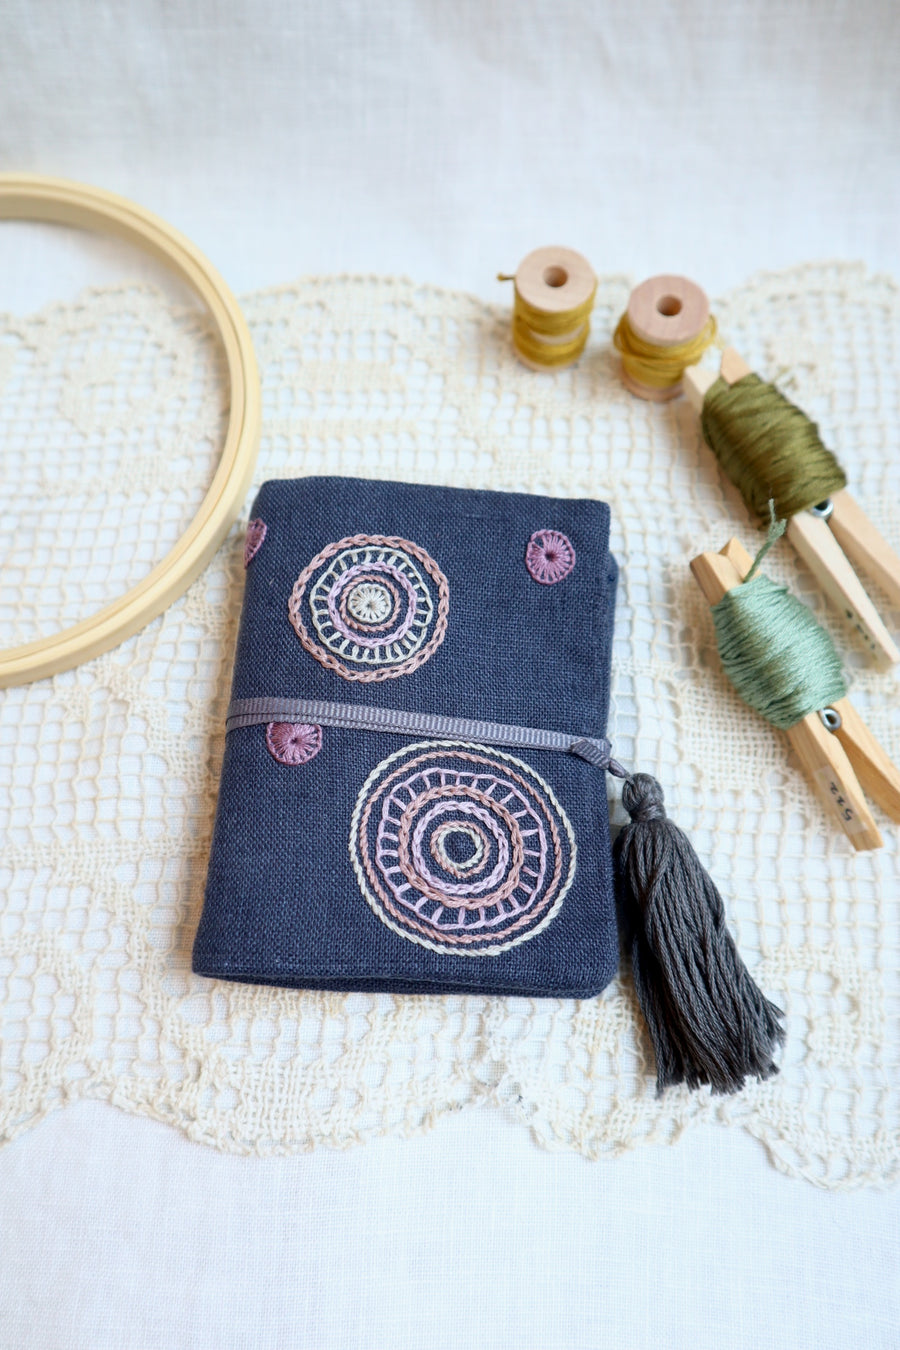 3/20 & 4/3 Fri Needle Book with a tassel